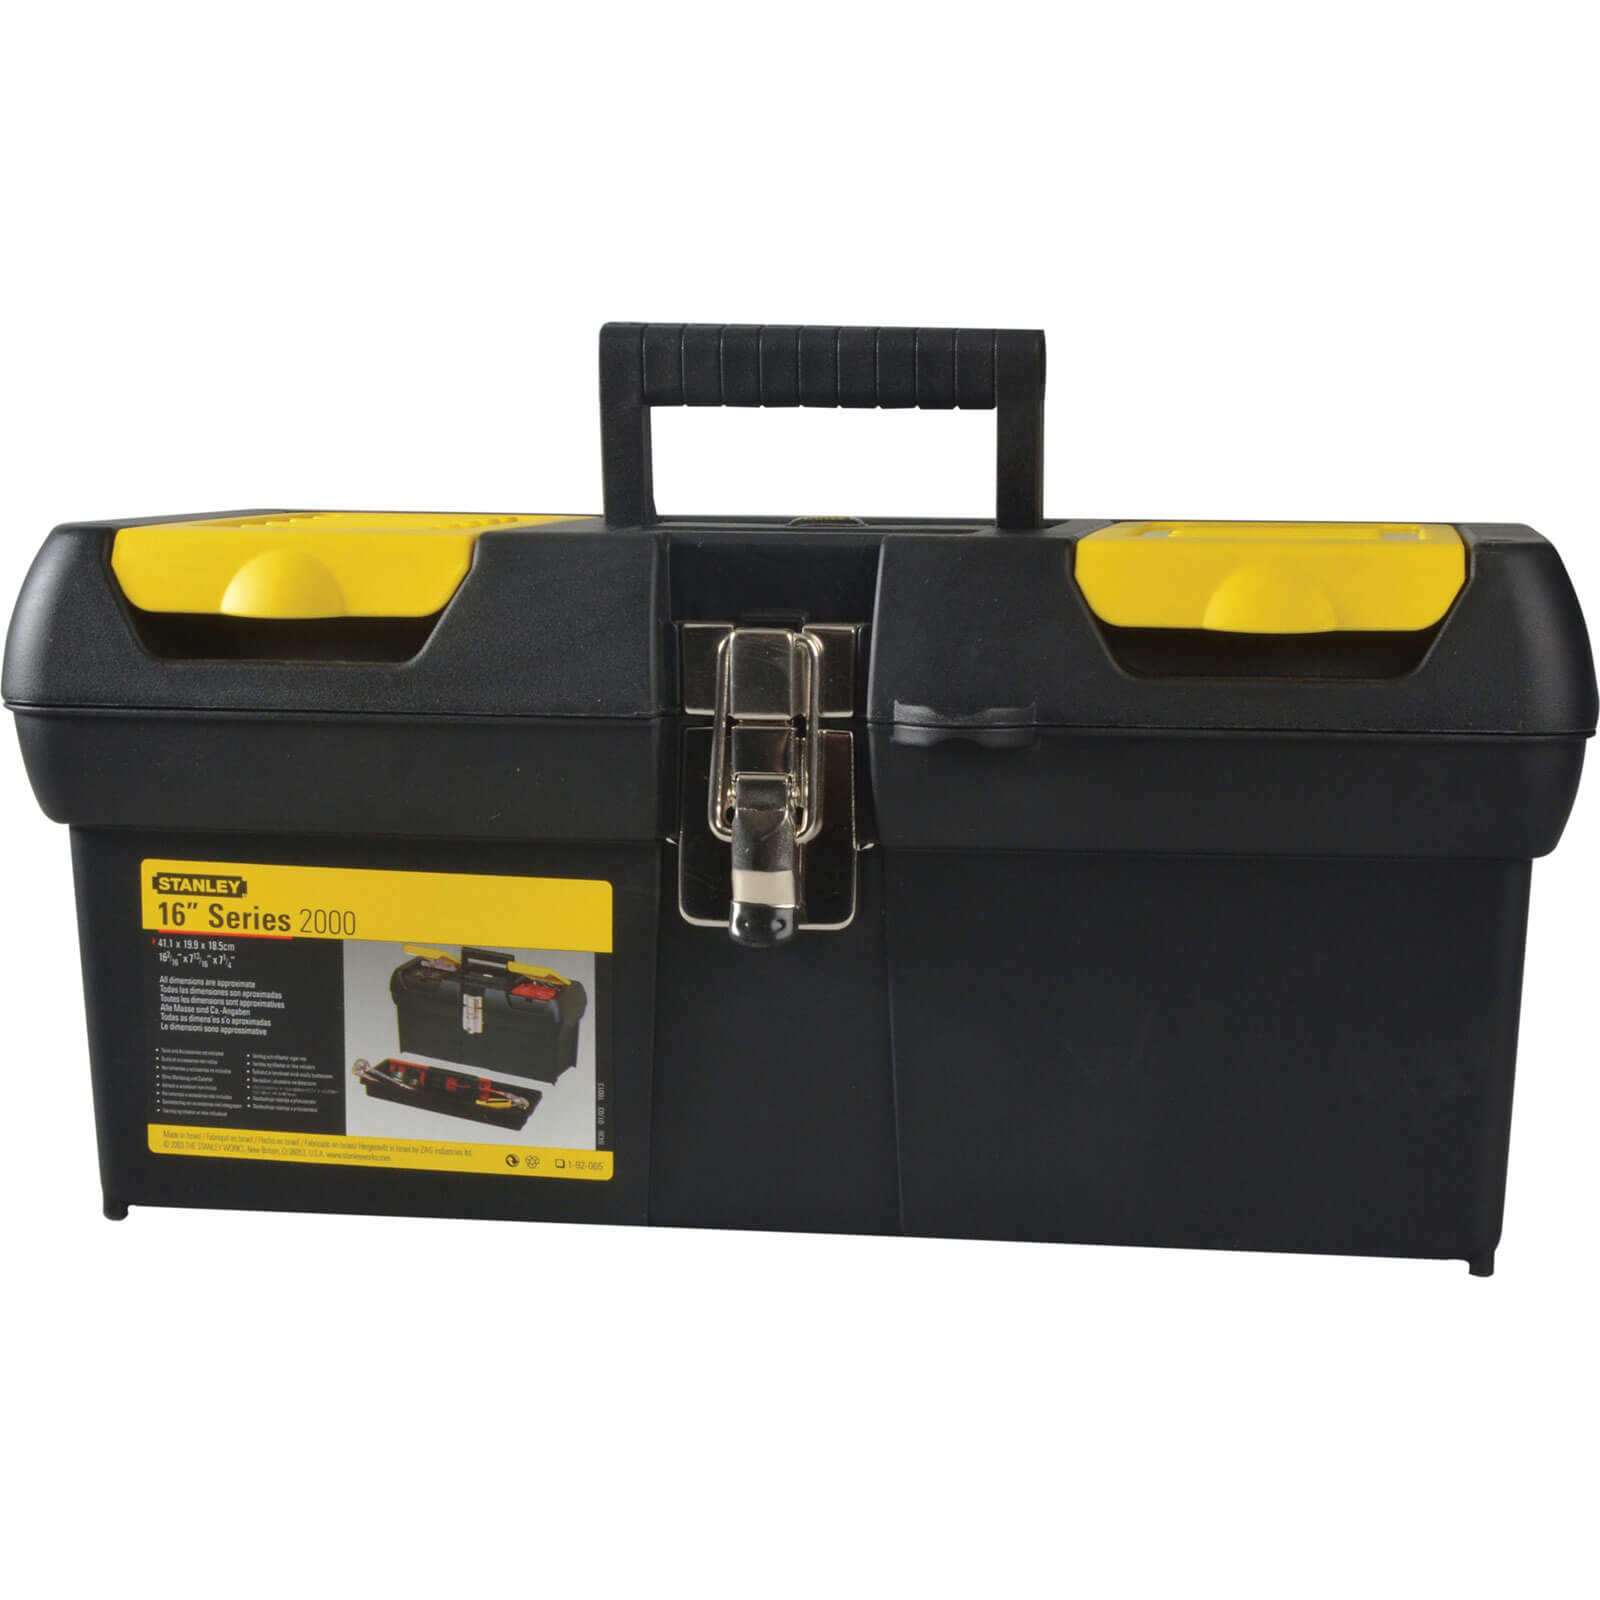 Stanley Plastic Tool Box 400mm